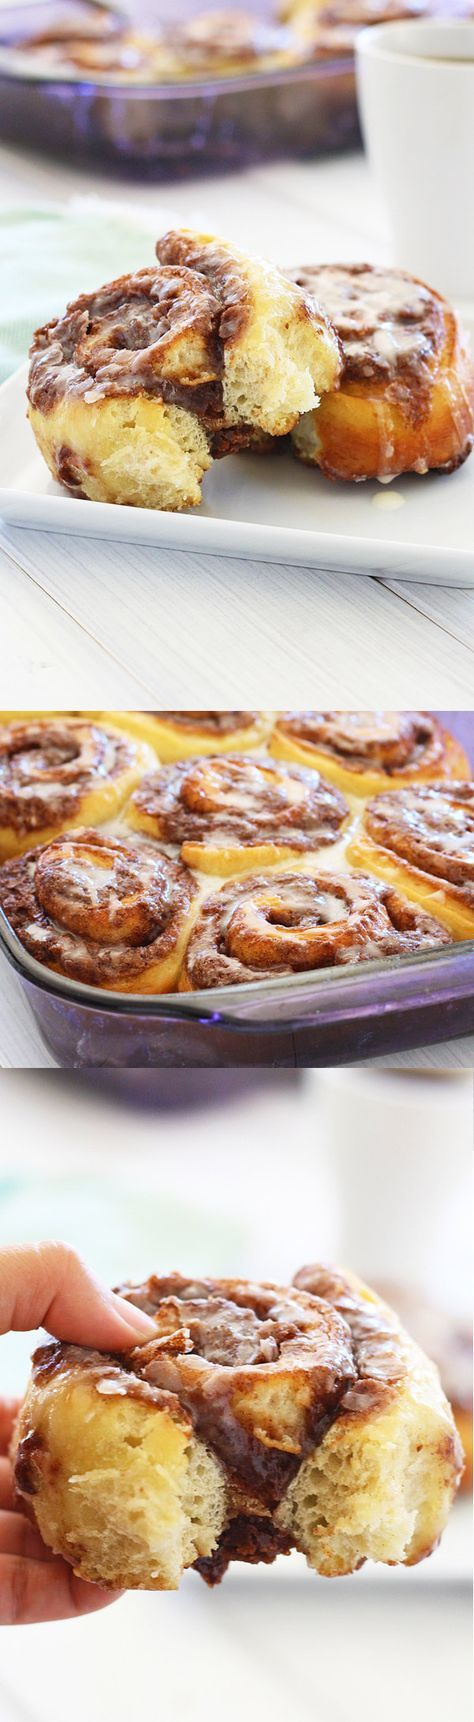 Pizza Dough Cinnamon Rolls - The easiest cinnamon rolls recipe EVER made with store-bought pizza dough. Quick and no-fuss recipe for busy moms!   rasamalaysia.com